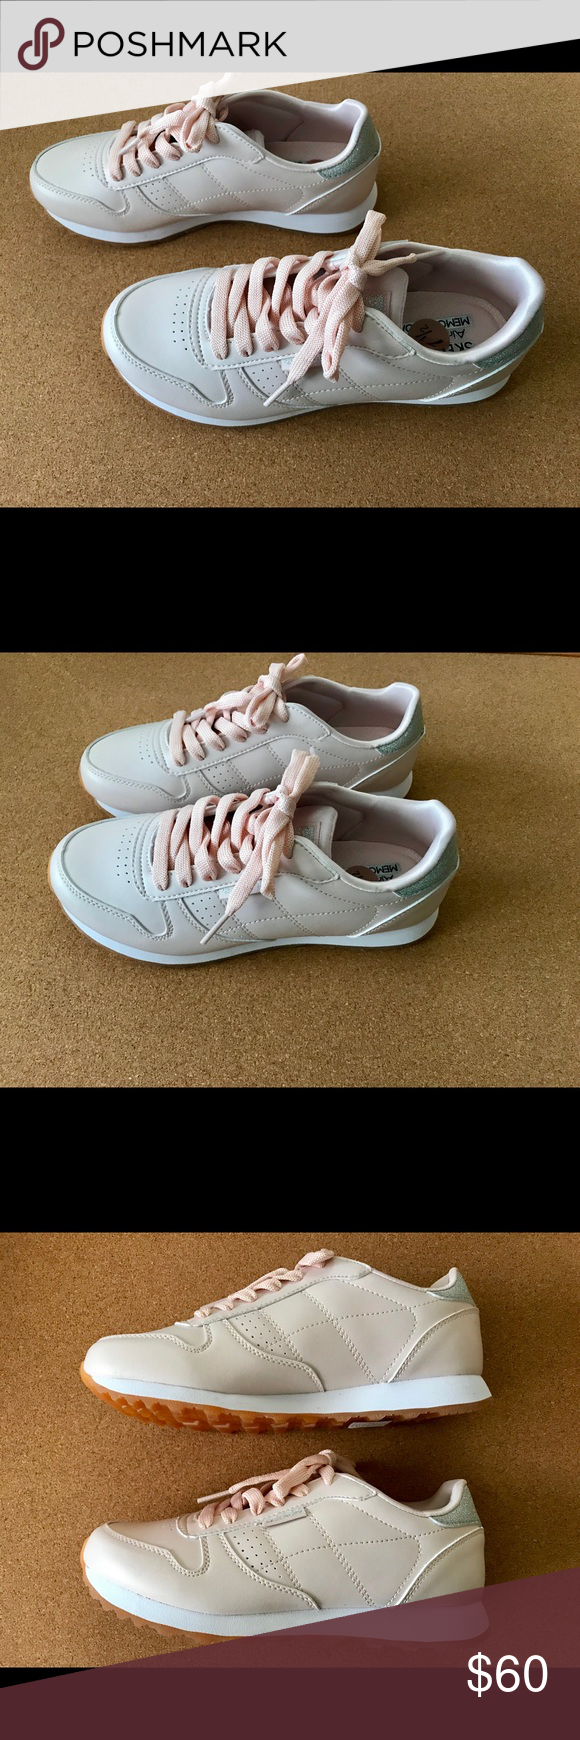 f7937cf6184b5 Women s Skechers OG 85 Old School Cool Brand new women s Skechers OG 85 - Old  School Cool Size 7 1 2 in light pink. Very cool pair of shoes in a pretty  ...